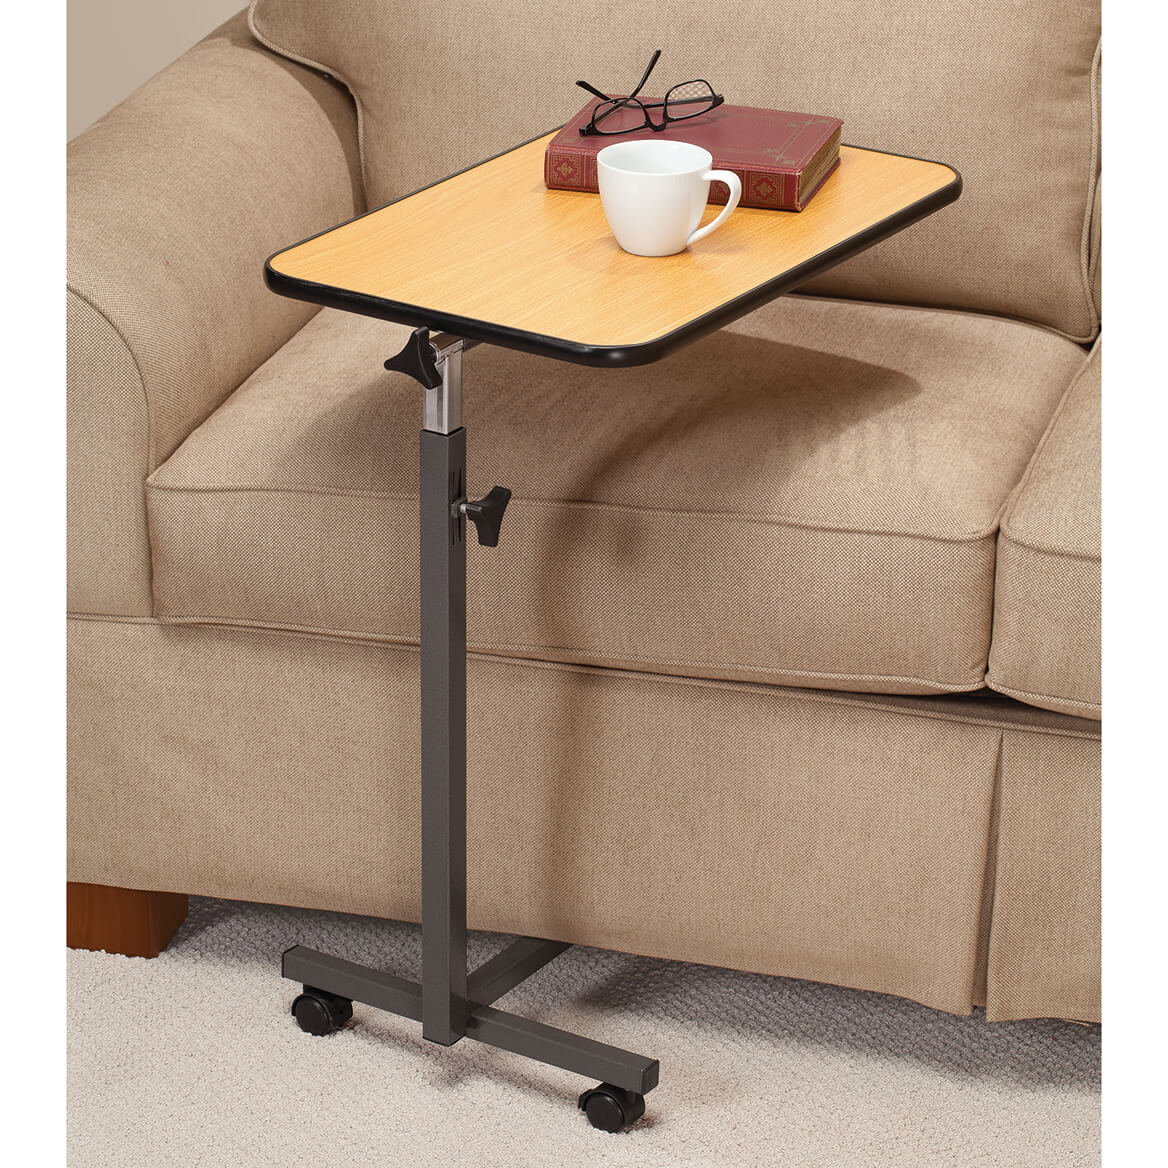 Rolling Tray Table                     XL-347640